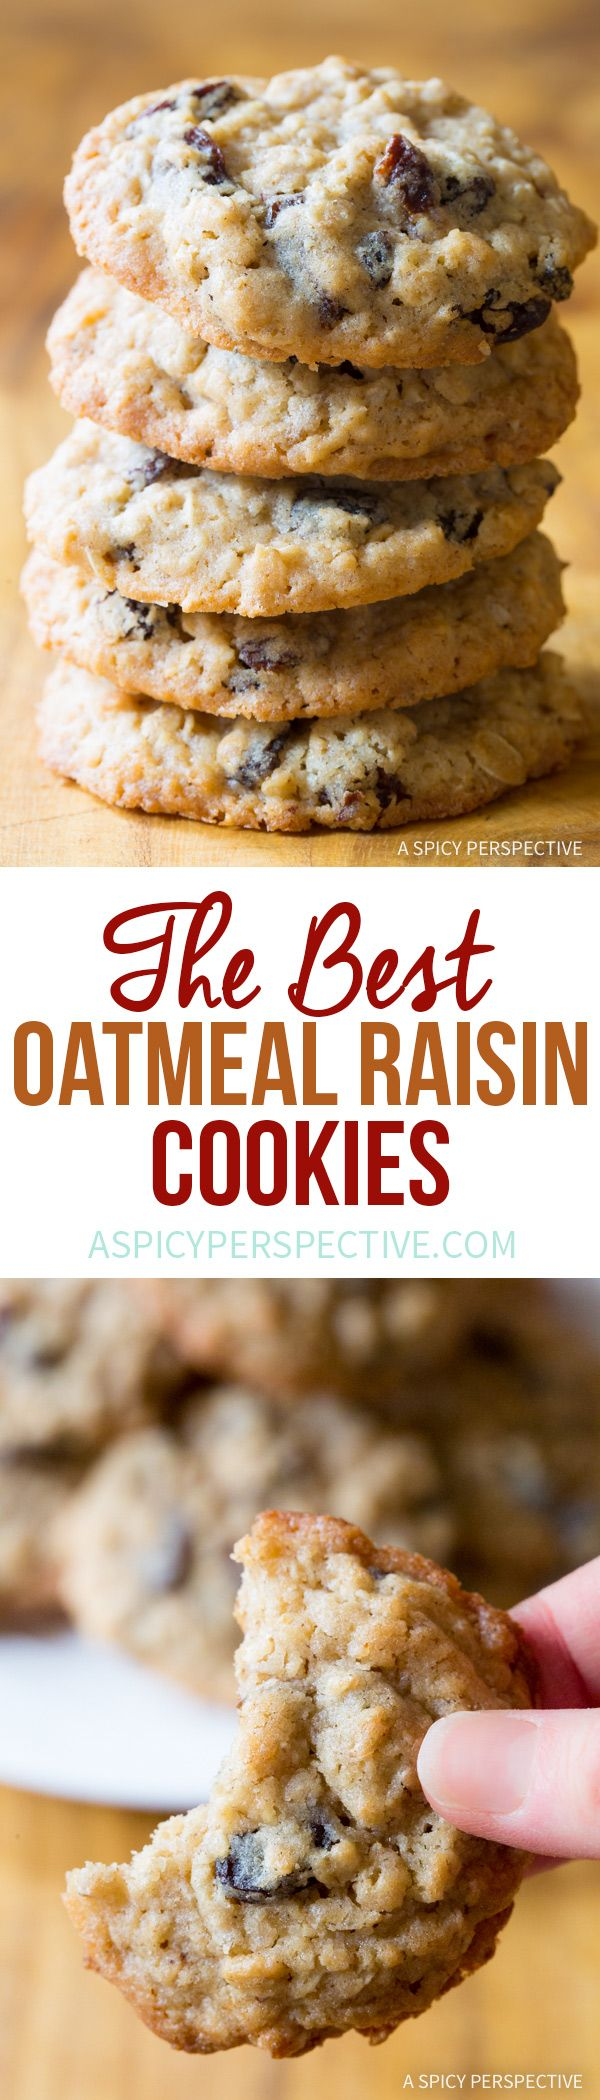 Literally The Best Oatmeal Raisin Cookies Ever! via @spicyperspectiv